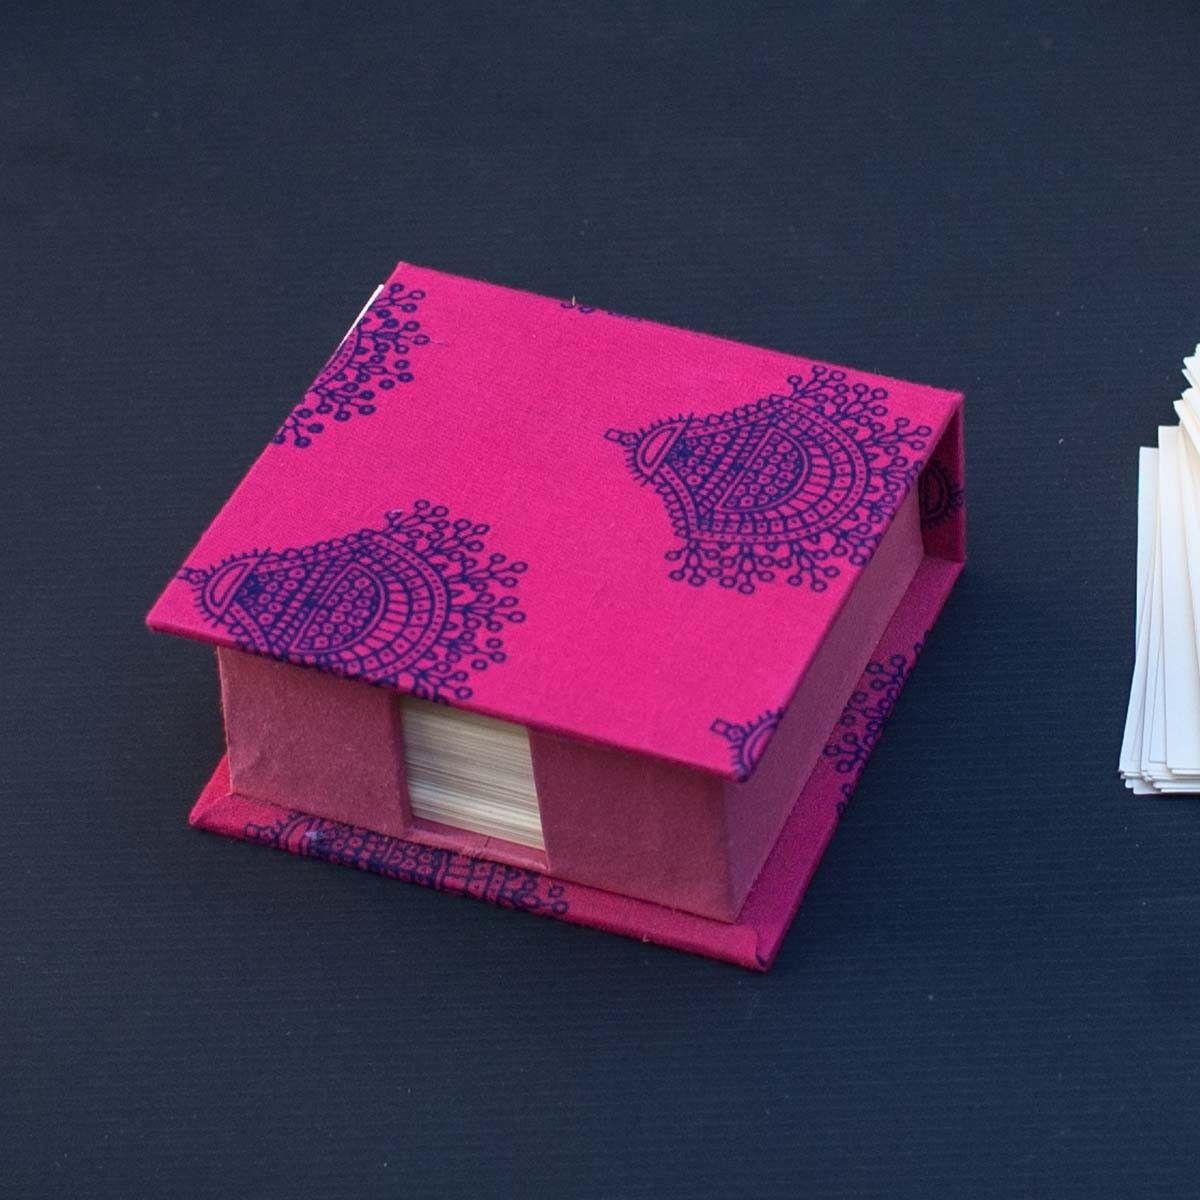 Pink Printed Fabric Cover Memo Box - 4 x 1.5 Inch